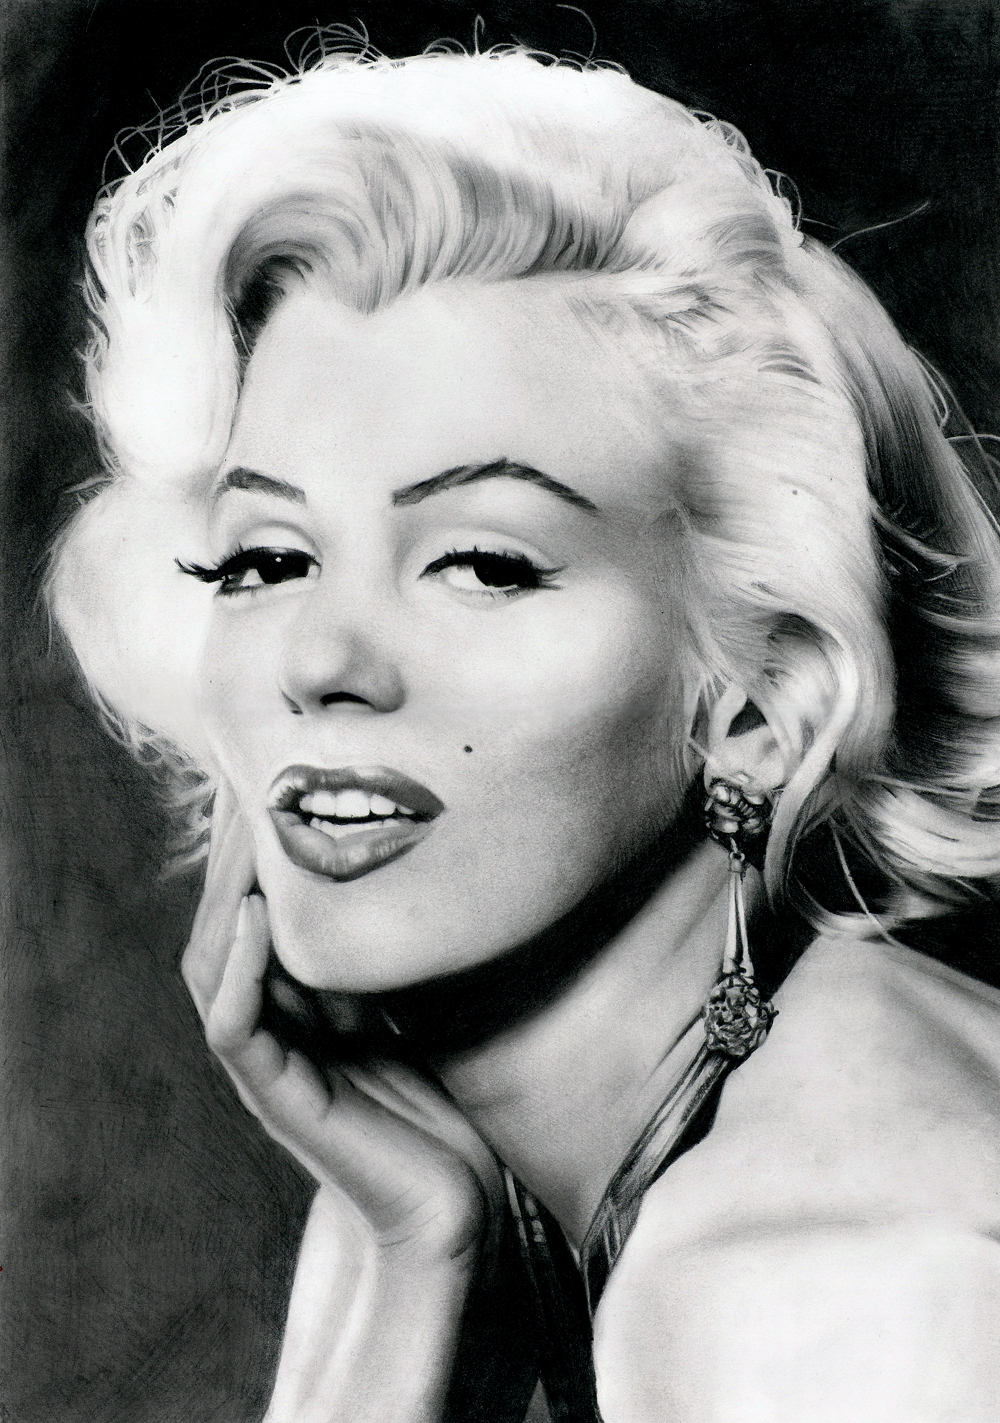 Marilyn Monroe's portrait by Stanbos